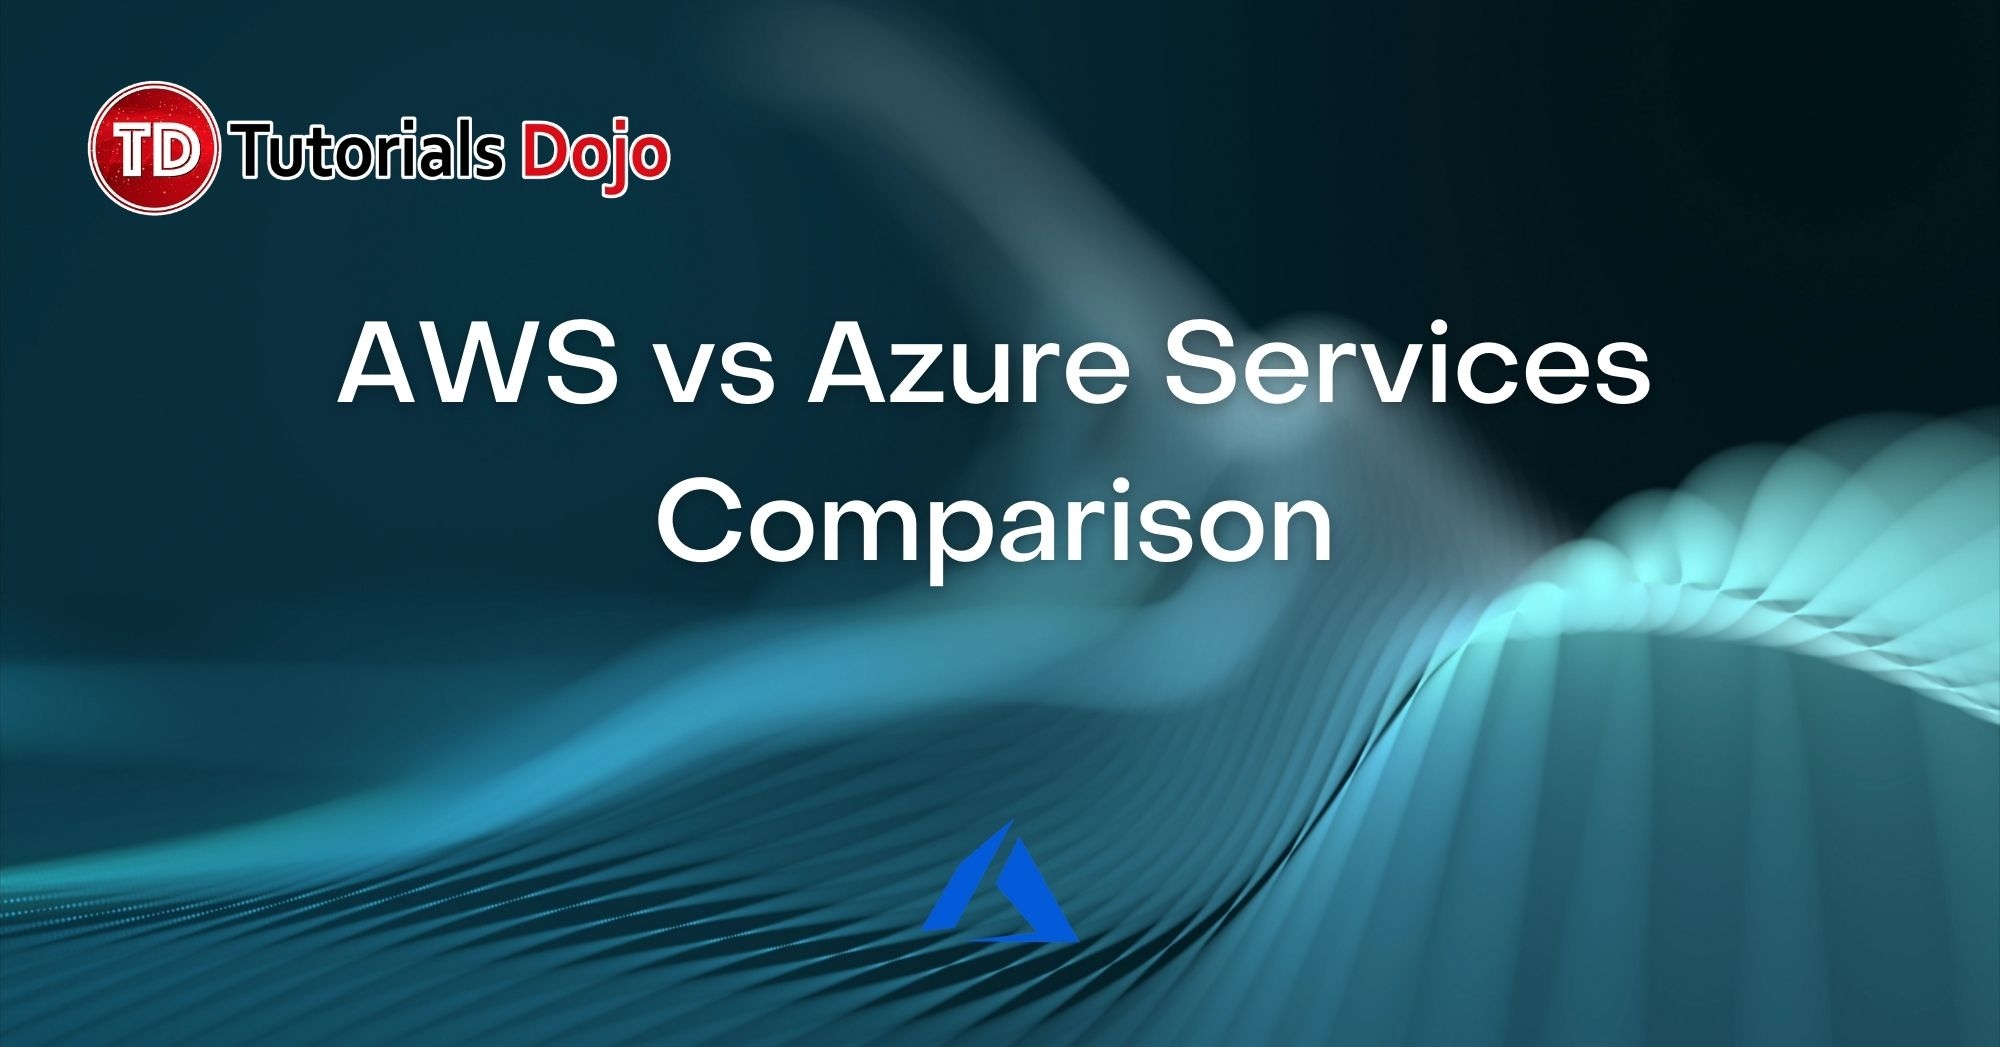 AWS vs Azure Services Comparison